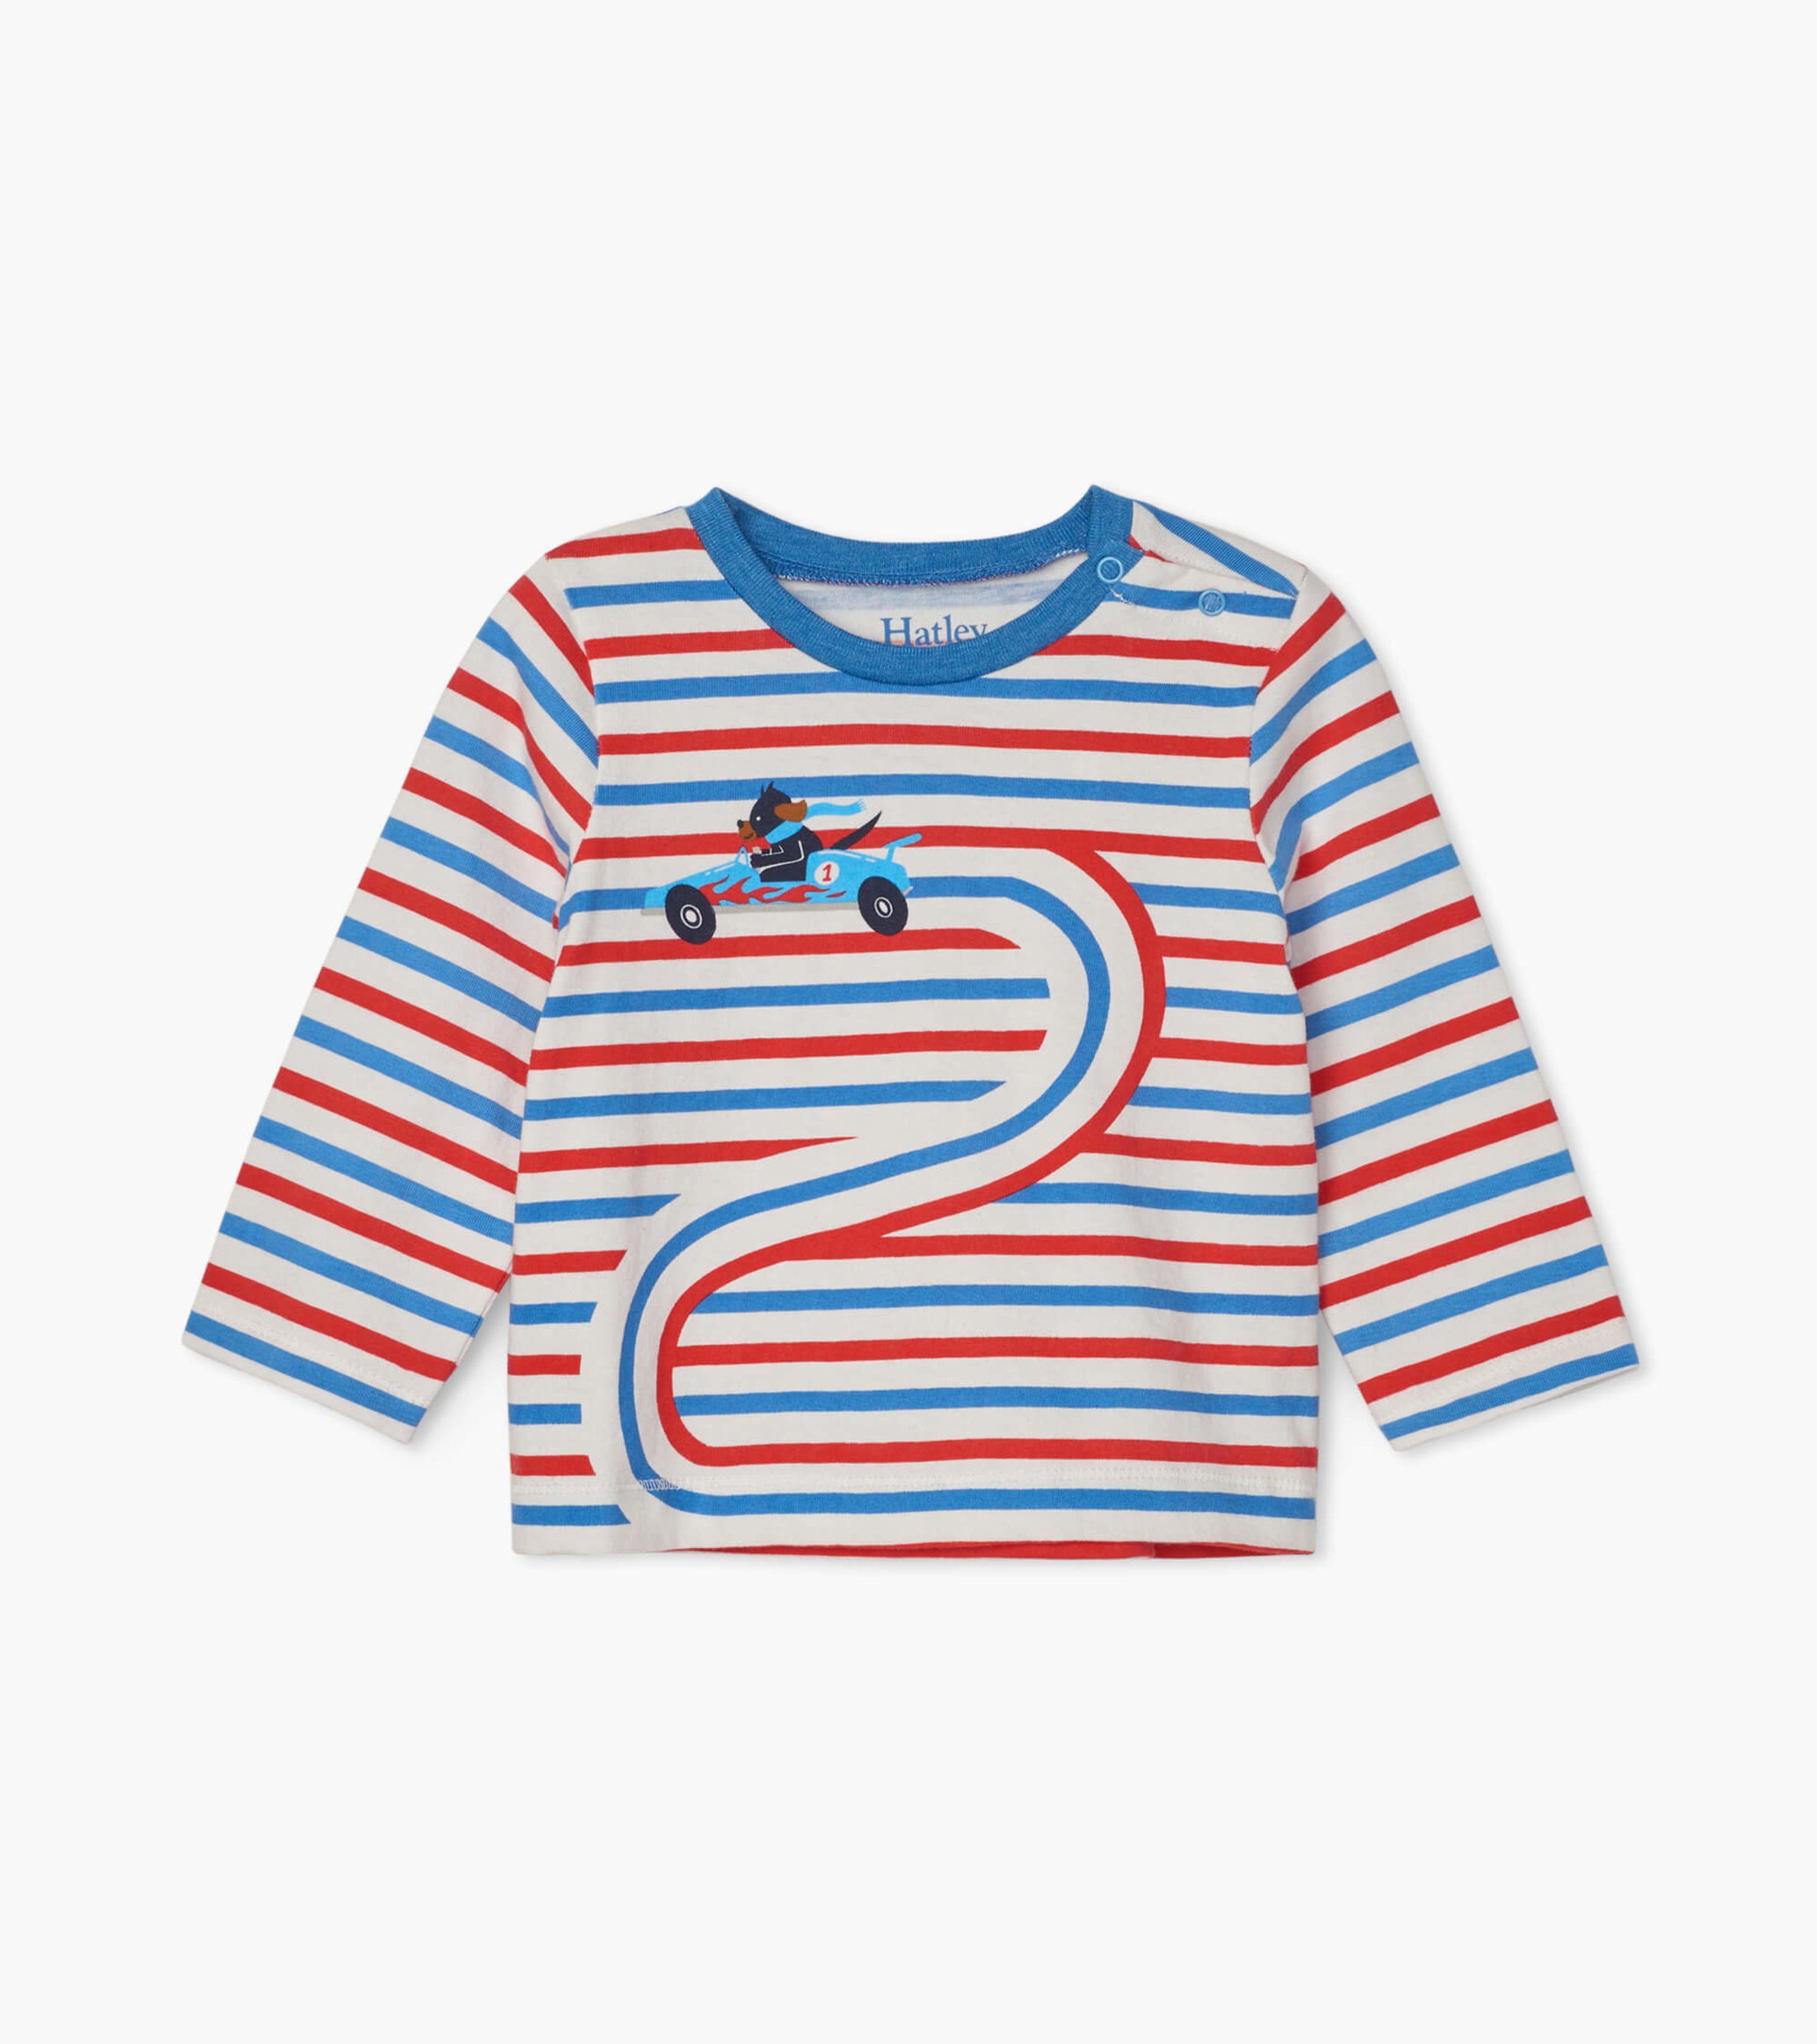 SALE £16.00 Hatley Race Car Doggy Long Sleeve Baby Tee (was £20.00)